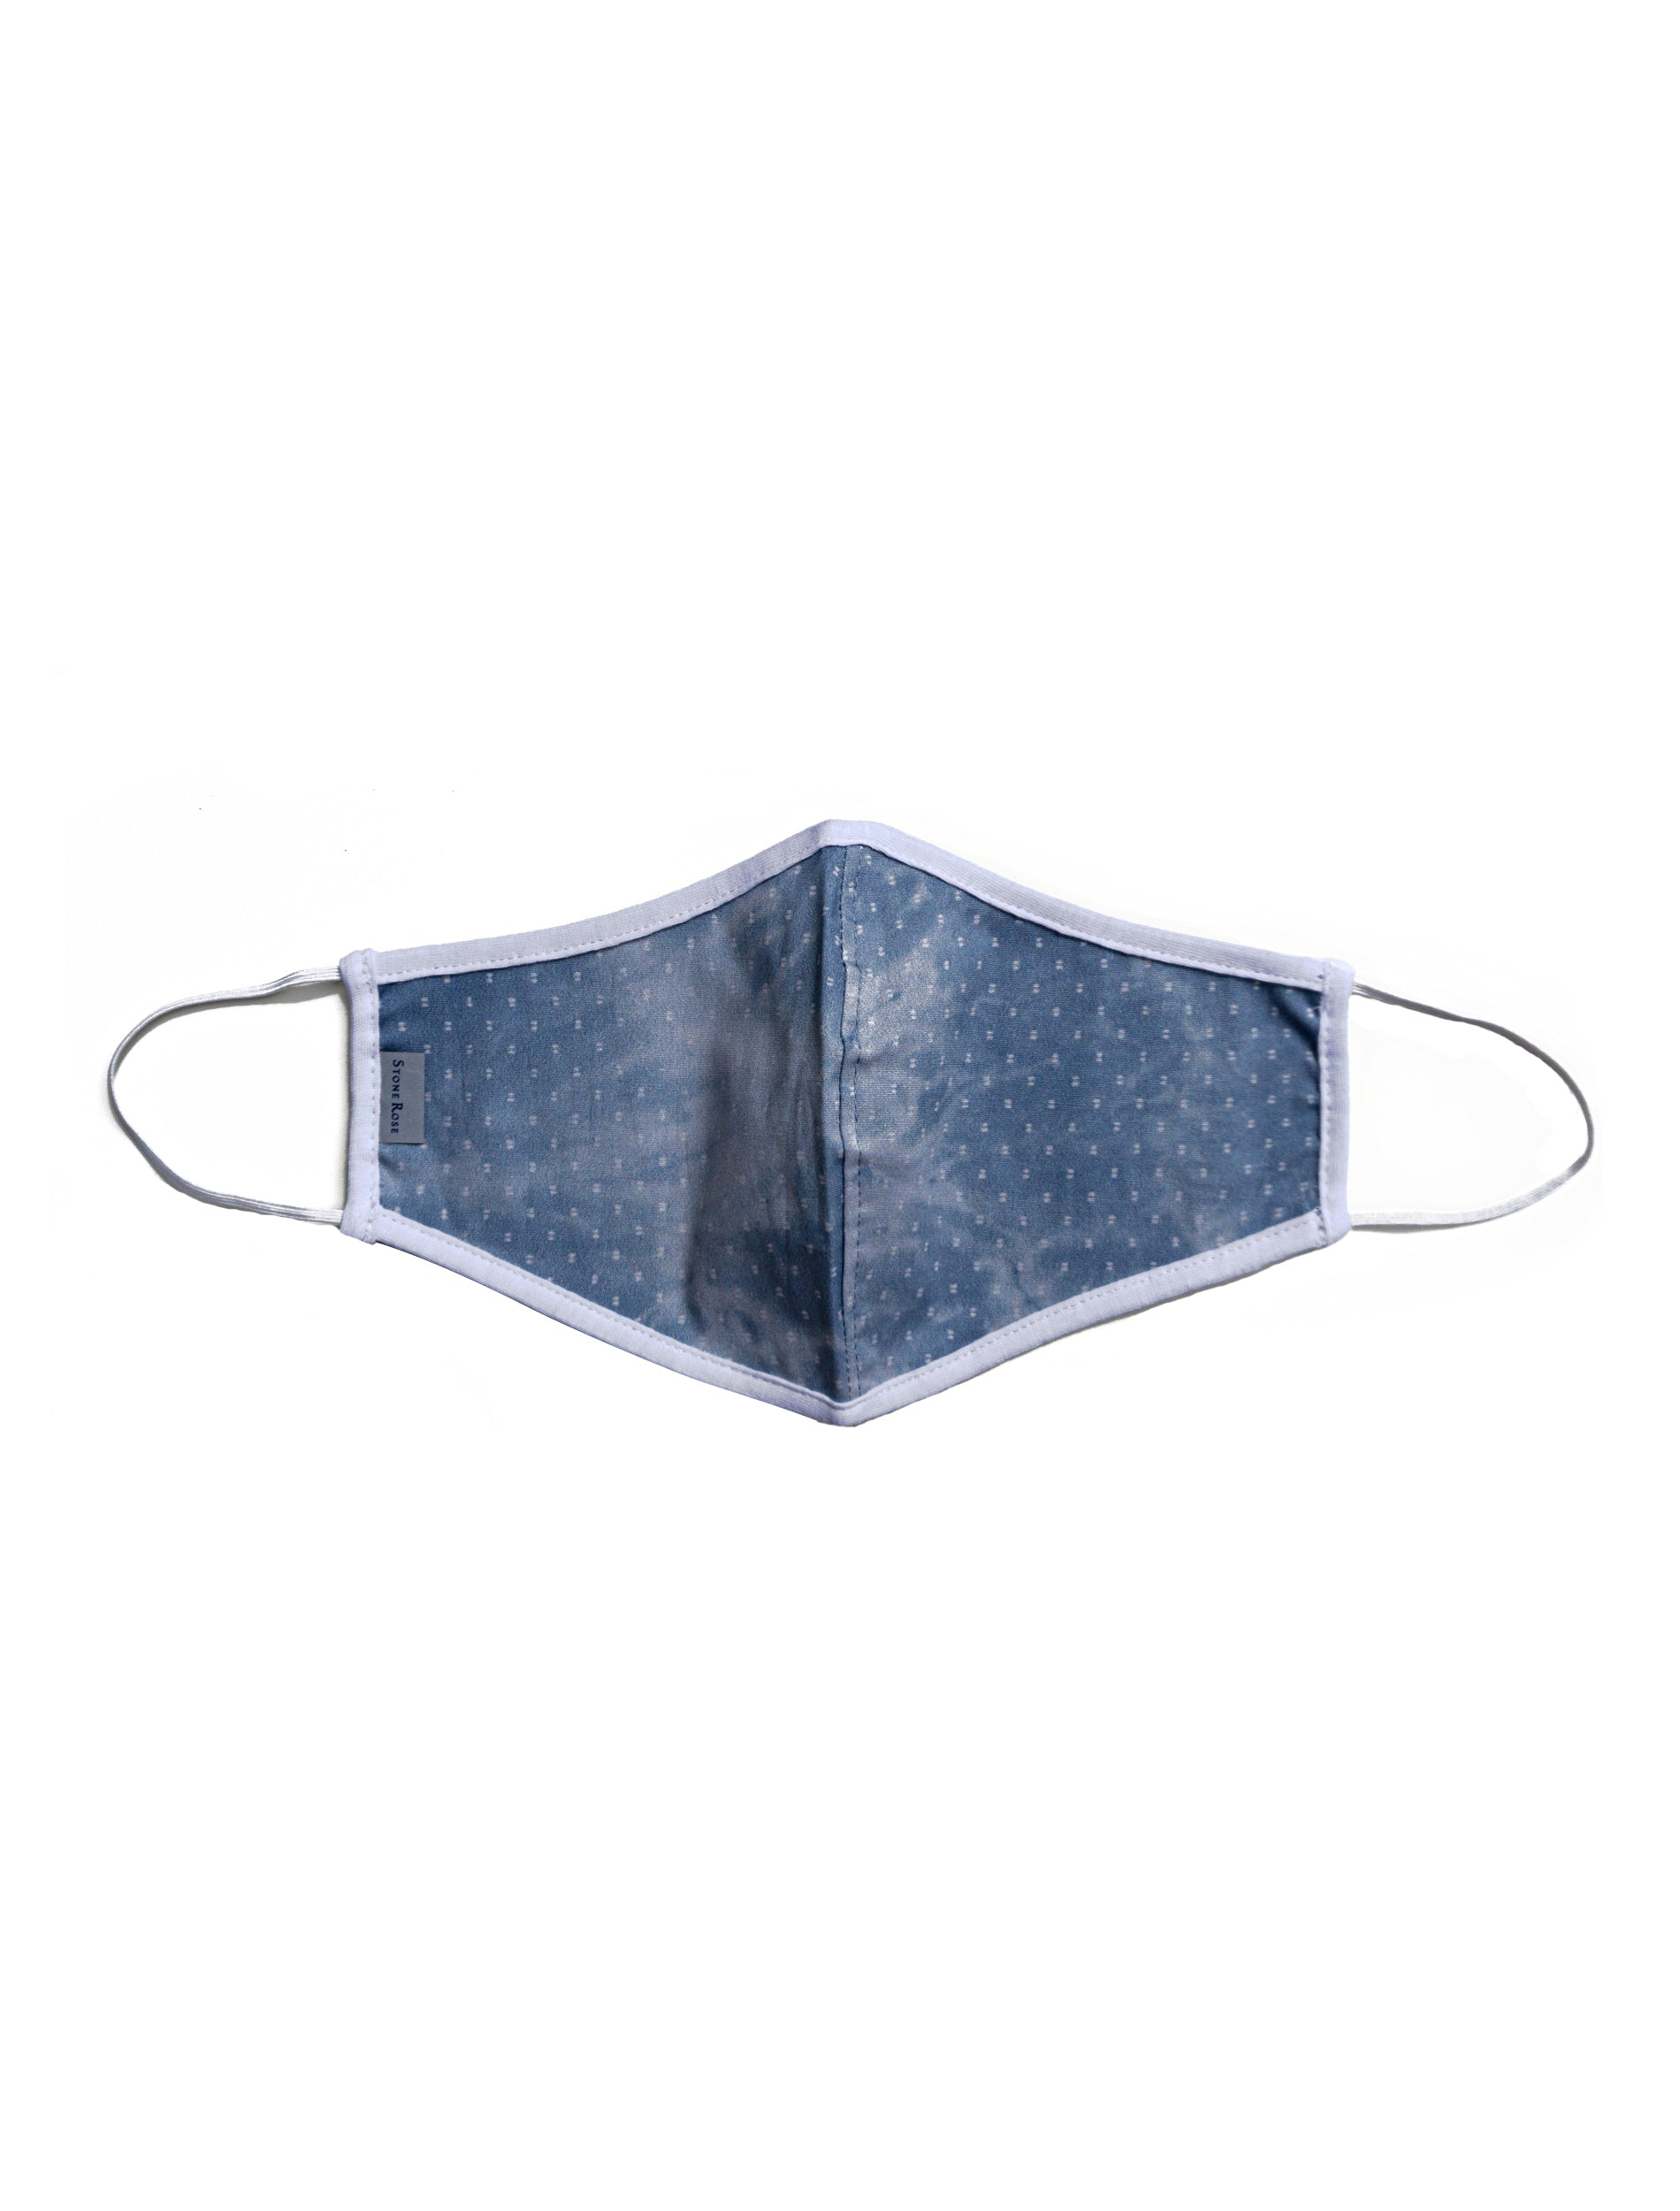 Denim with white dots - Reusable Lighweight Face Mask